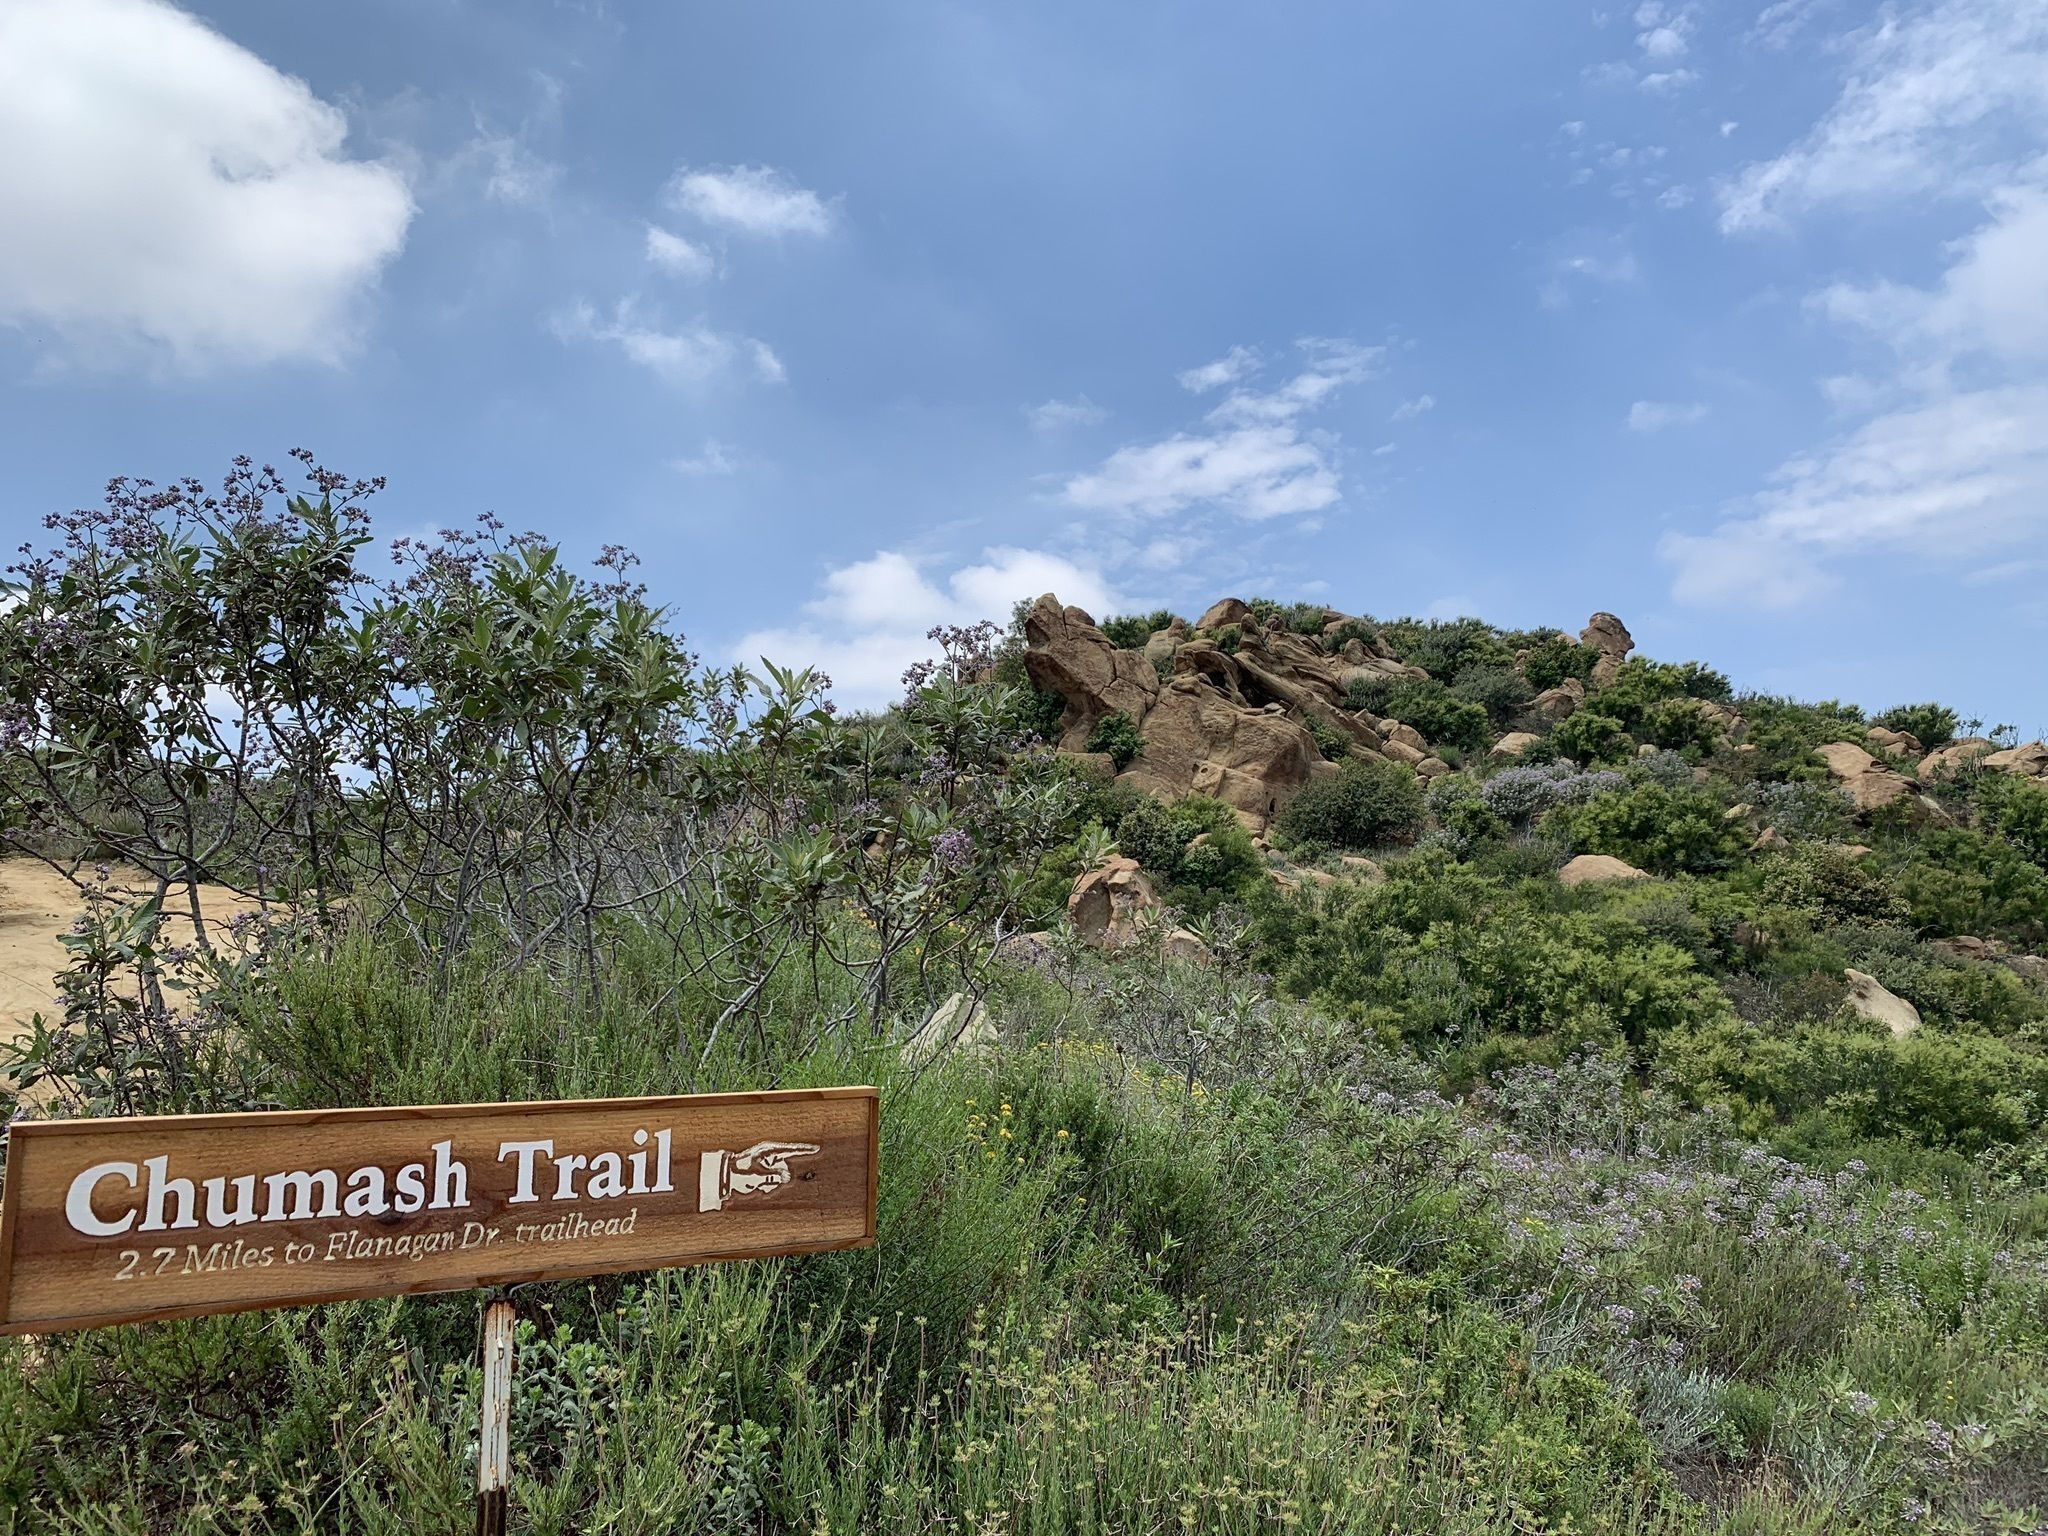 Best Mountain Biking Trails near Simi Valley, California